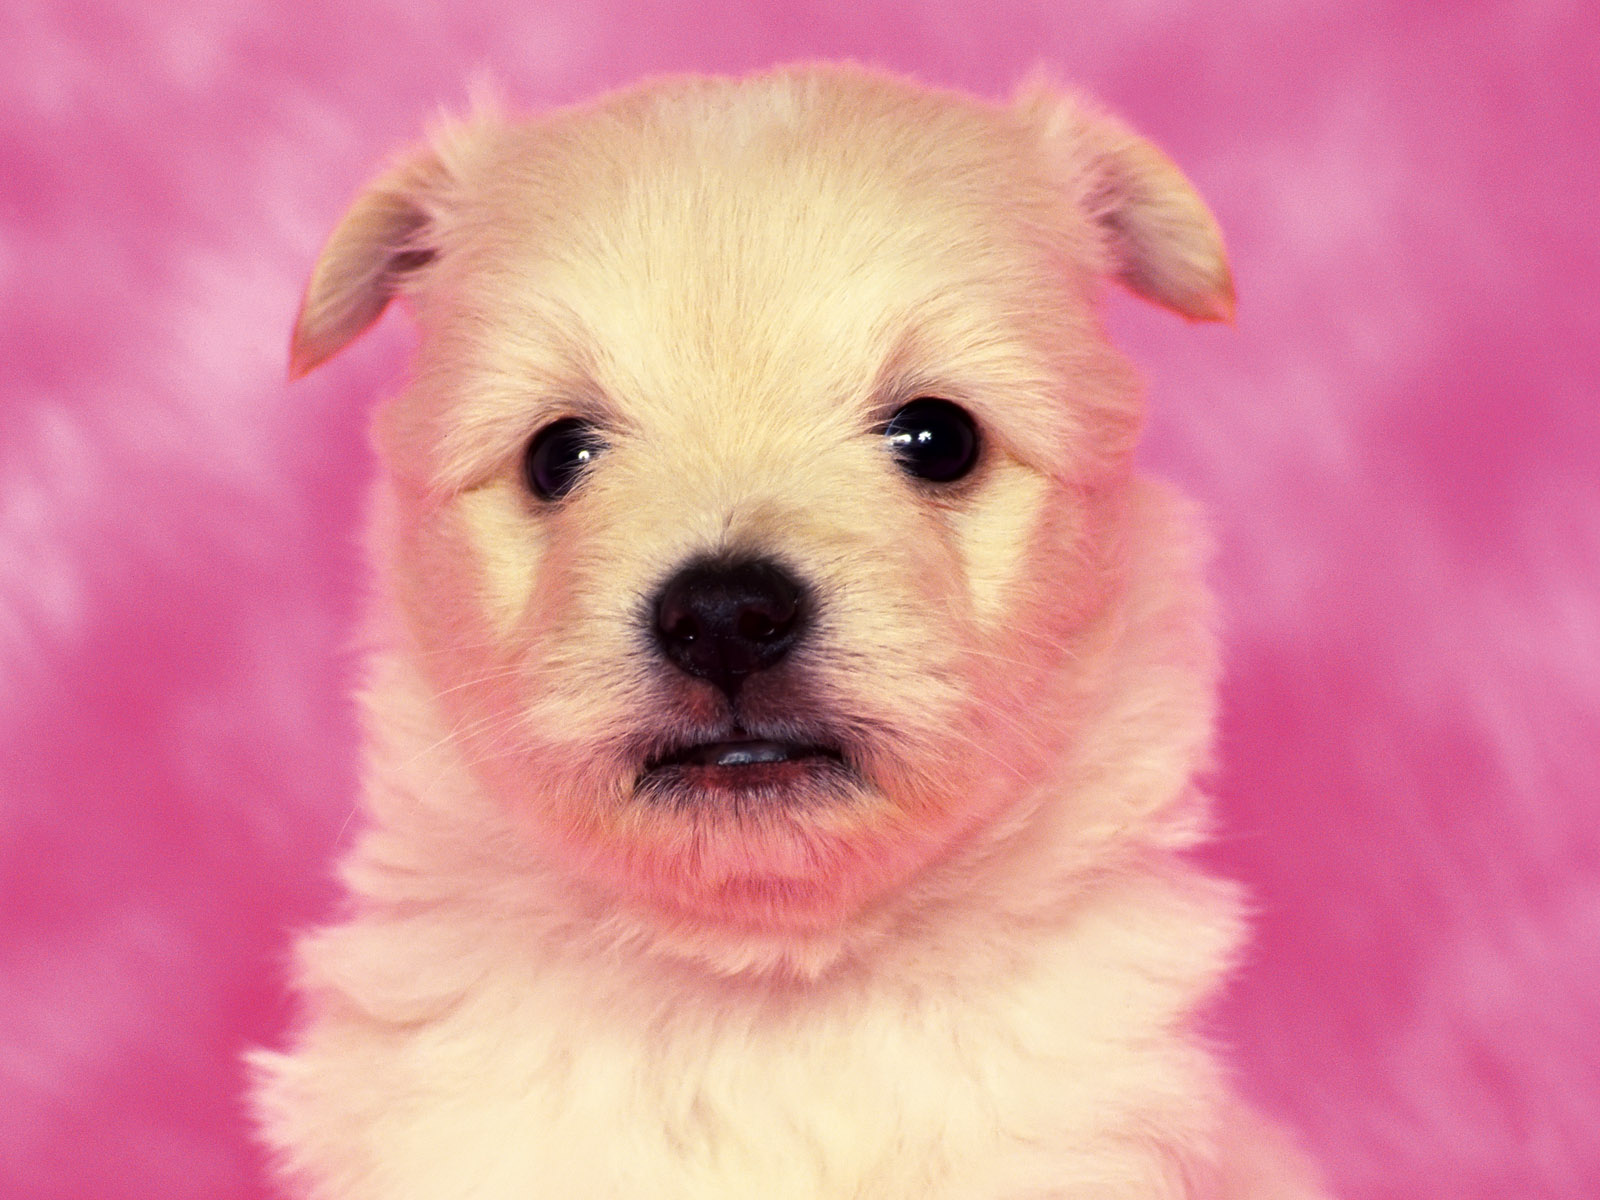 Cute Puppy Dog Wallpaper Wallpaper ME 1600x1200